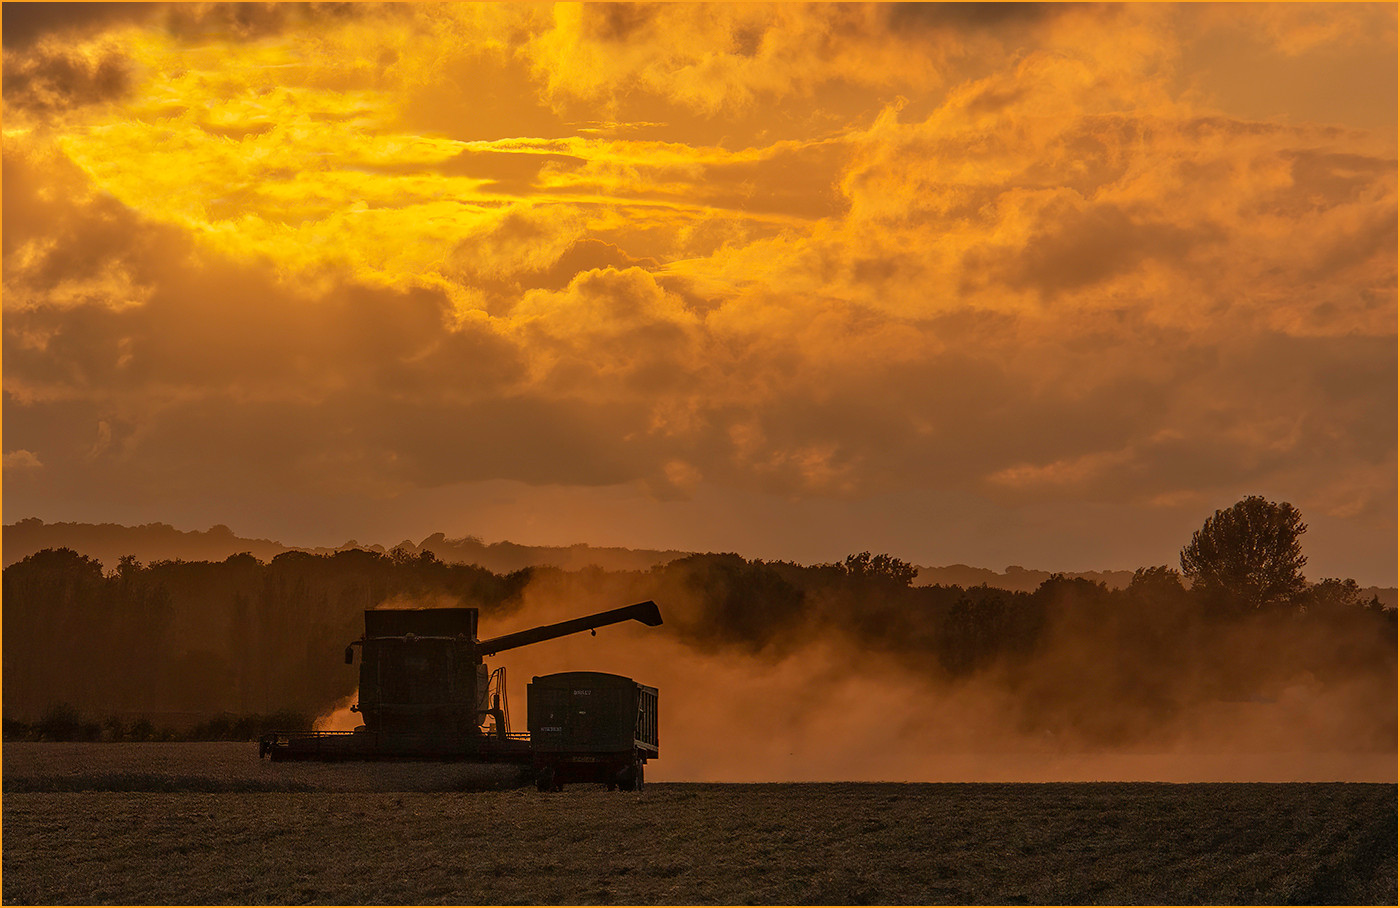 17 HADLOW HARVEST AT SUNSET by Colin Burgess